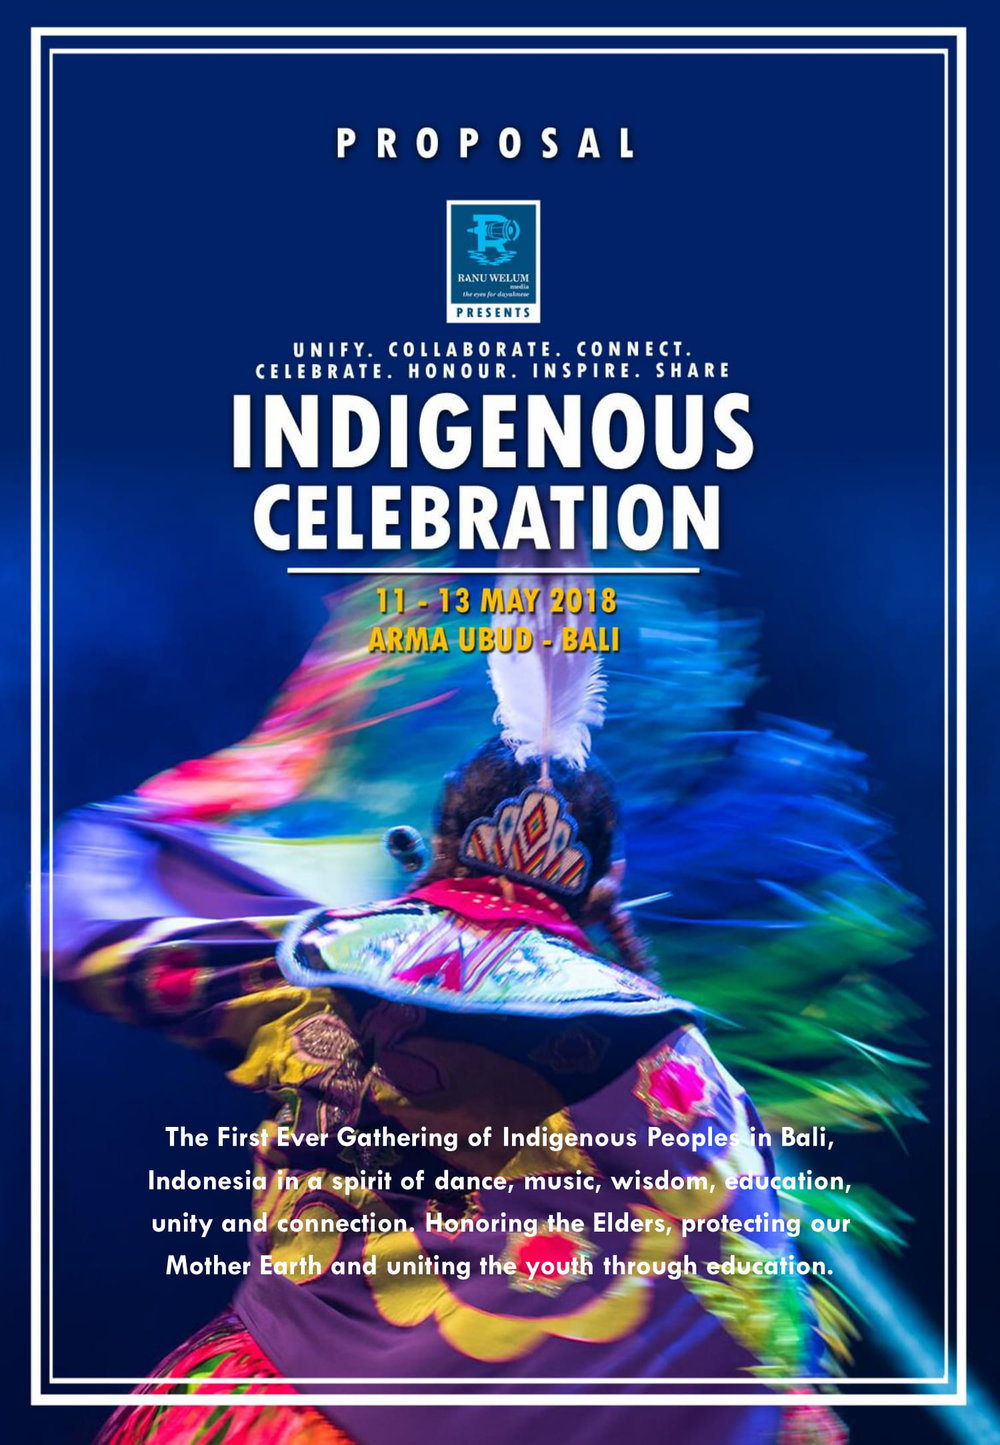 Proposal Indigenous Festival 2018 -01.jpg